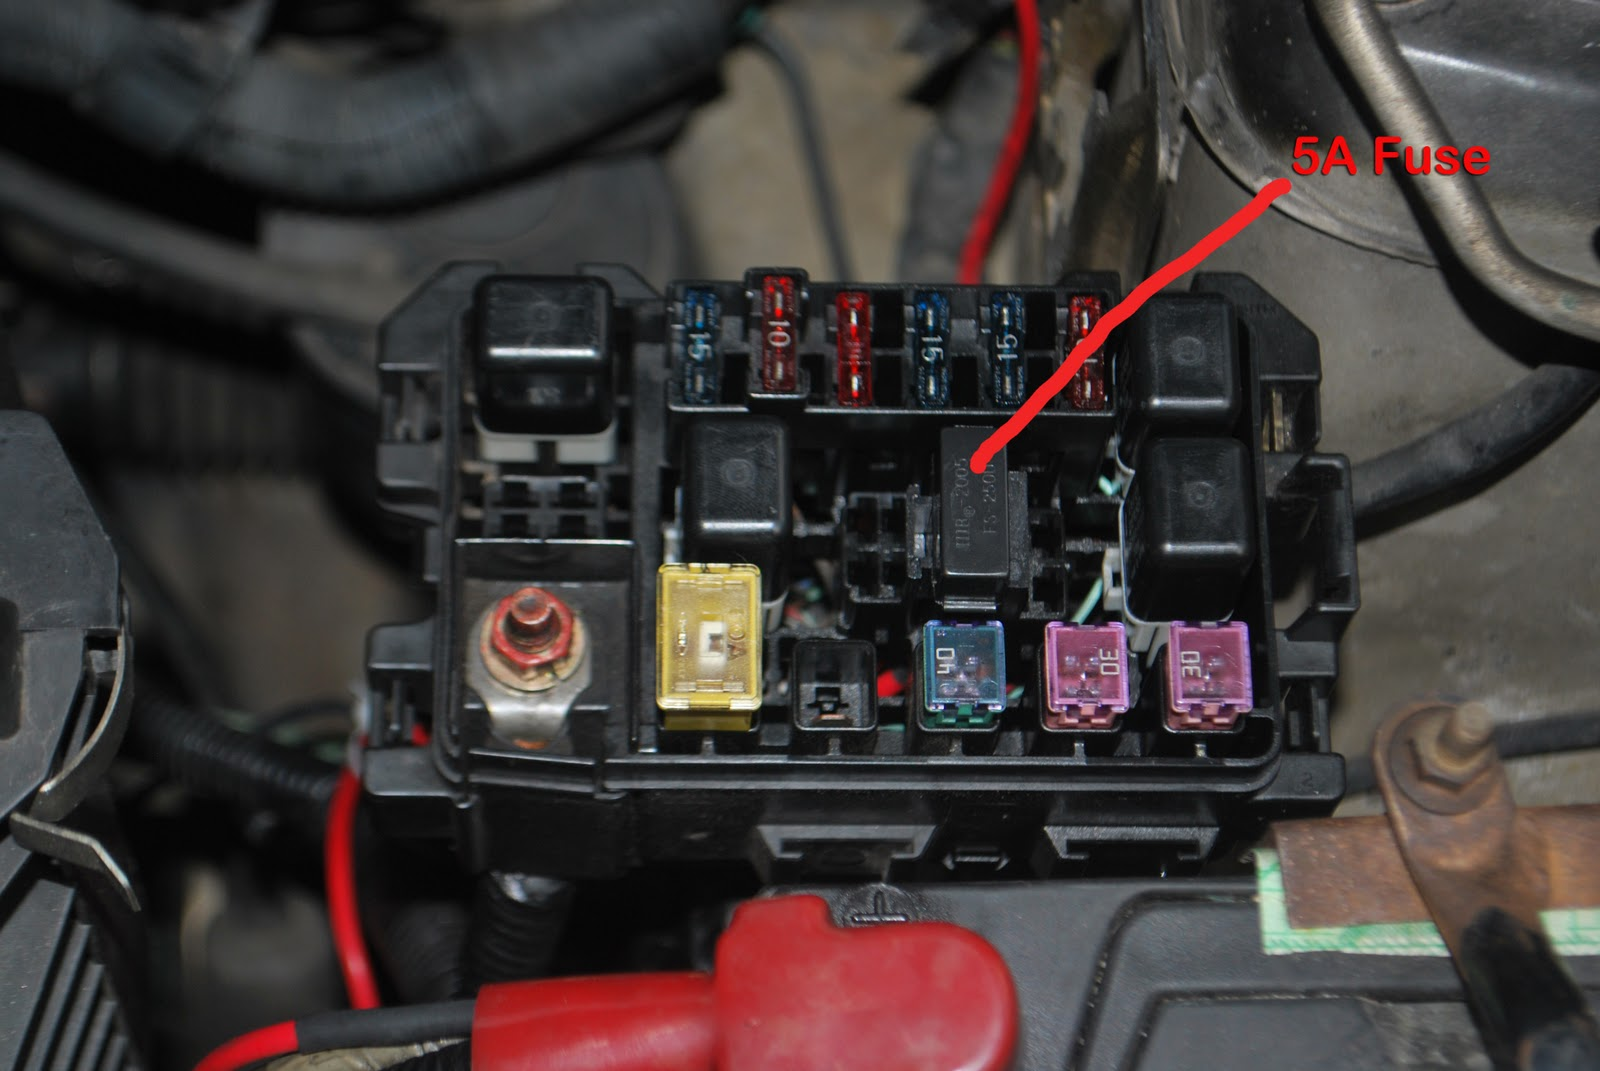 hight resolution of daihatsu cuore fuse box diagram wiring library perodua kancil 660 fuse box kancil fuse box schematic